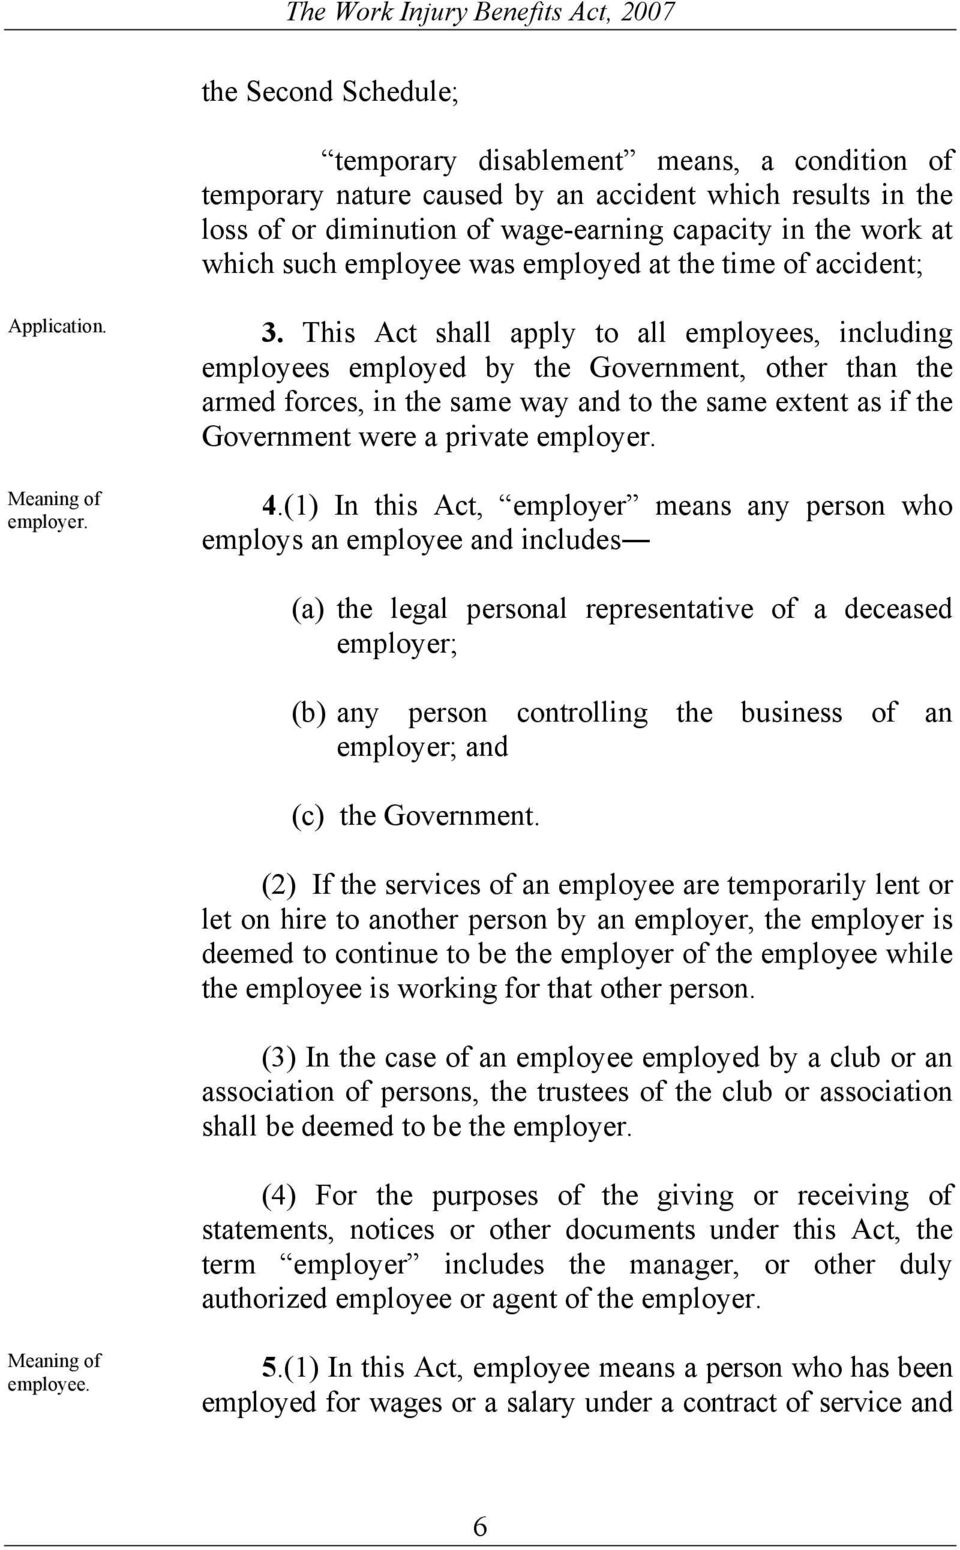 This Act shall apply to all employees, including employees employed by the Government, other than the armed forces, in the same way and to the same extent as if the Government were a private employer.